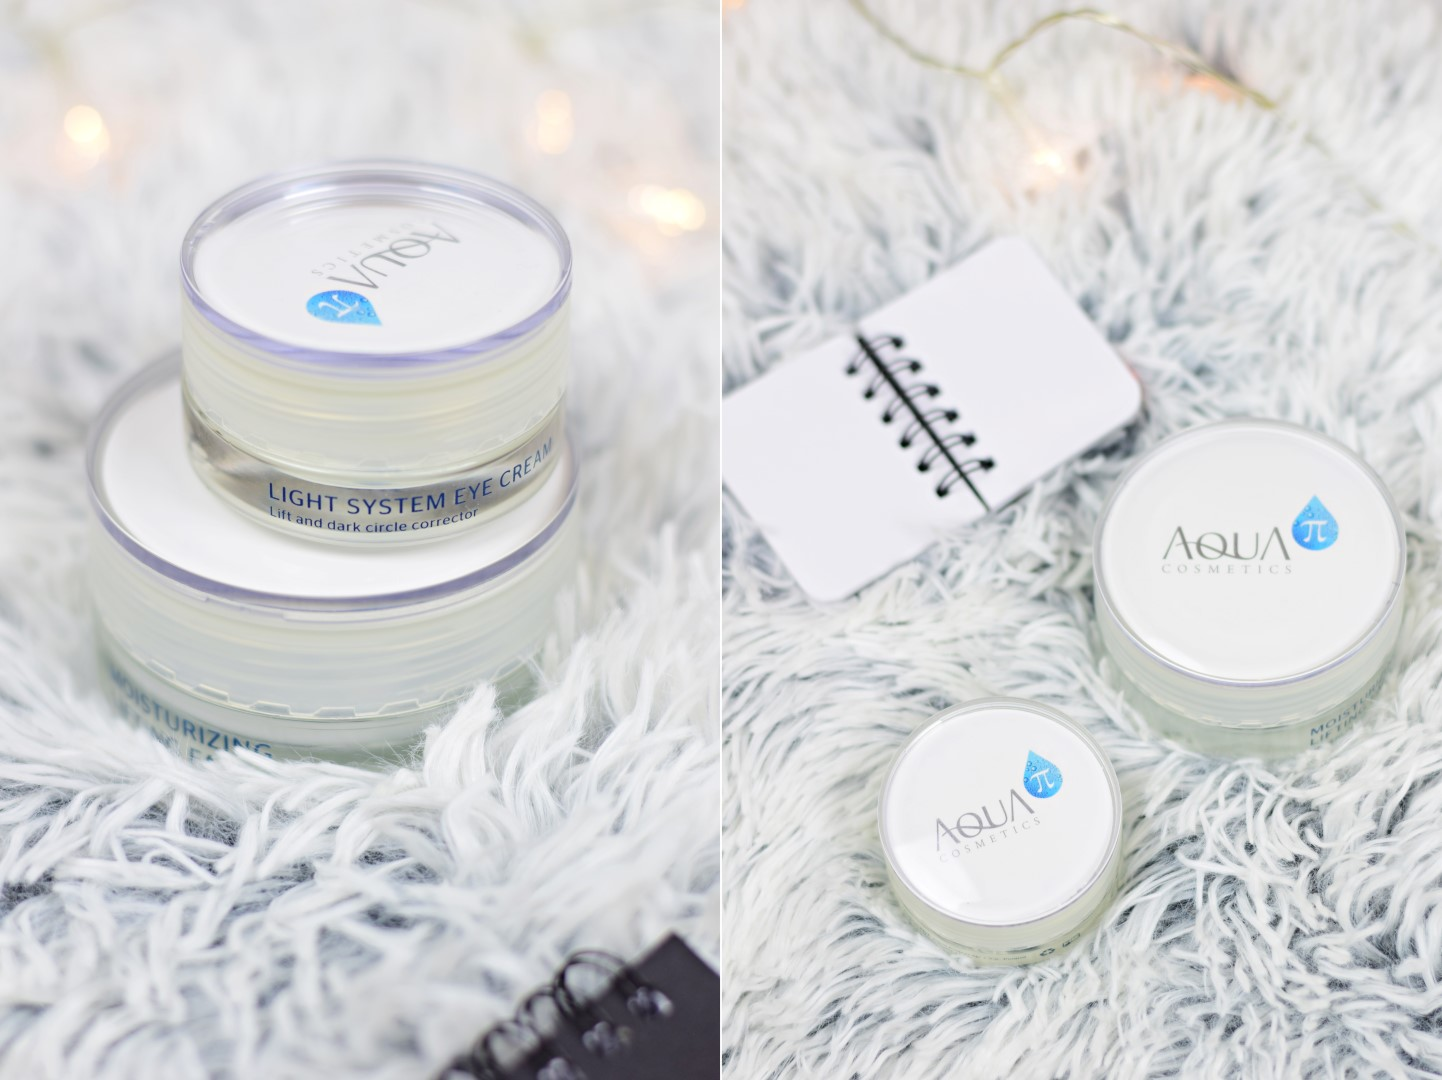 aqua_pi_cosmetics_krem_nawilżający_pod_oczy_moisturizing_lifting_face_cream_Light_system_eye_cream_blog_opinie